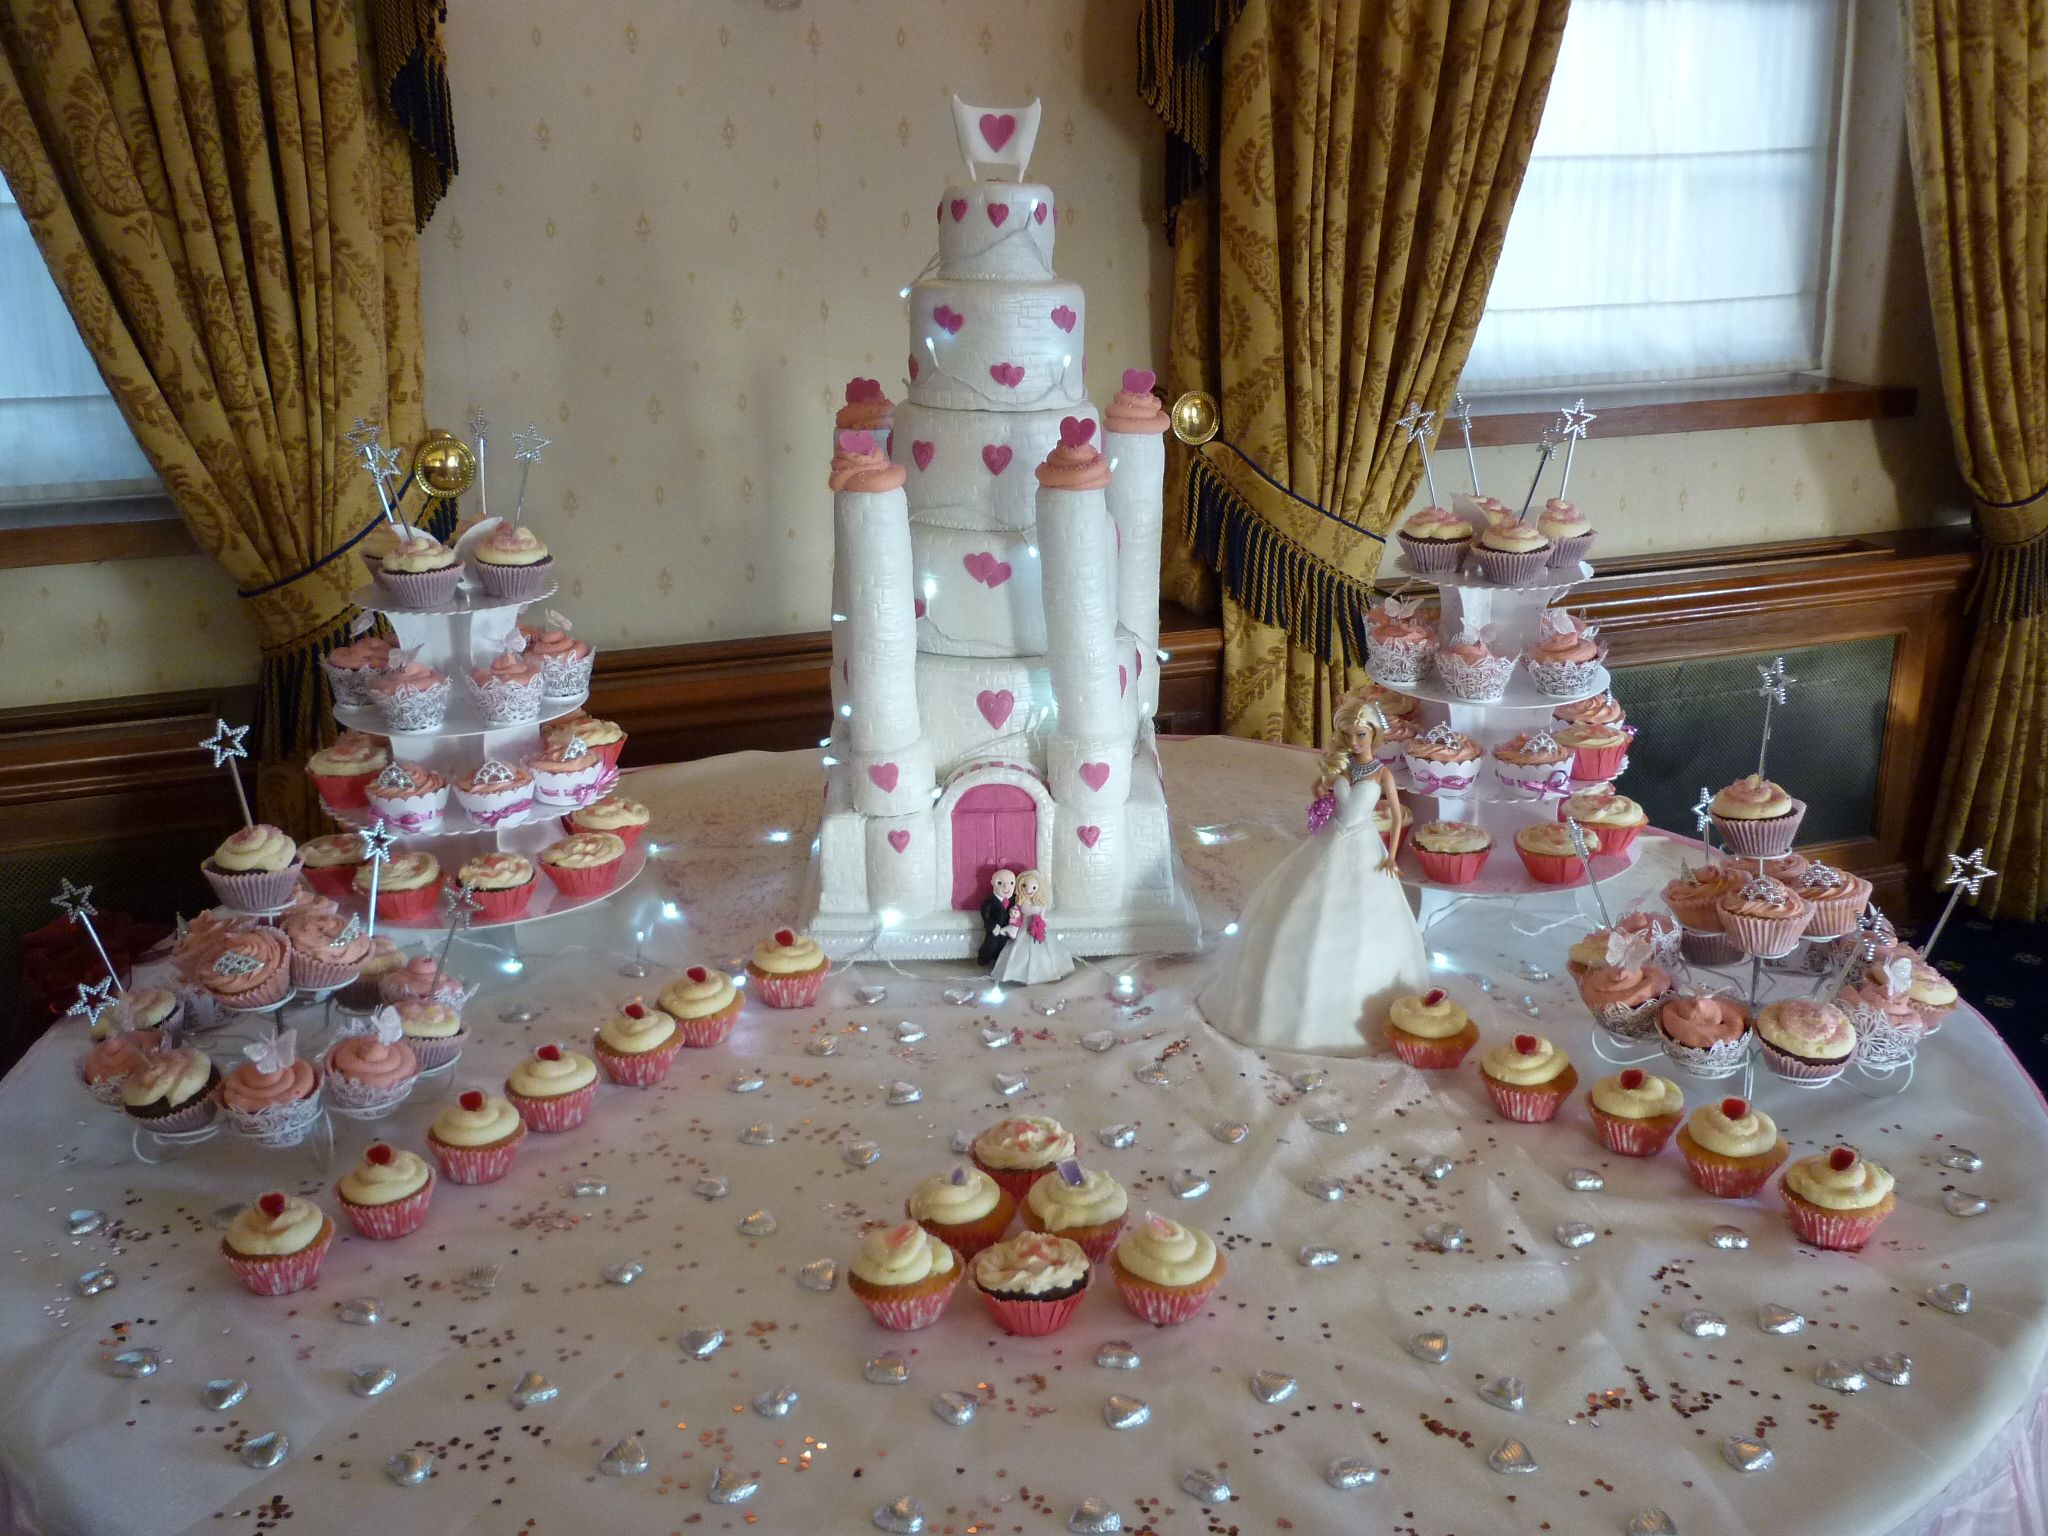 6 Tier Fairy Castle Wedding Cake with Cupcakes & Barbie Bride Cake